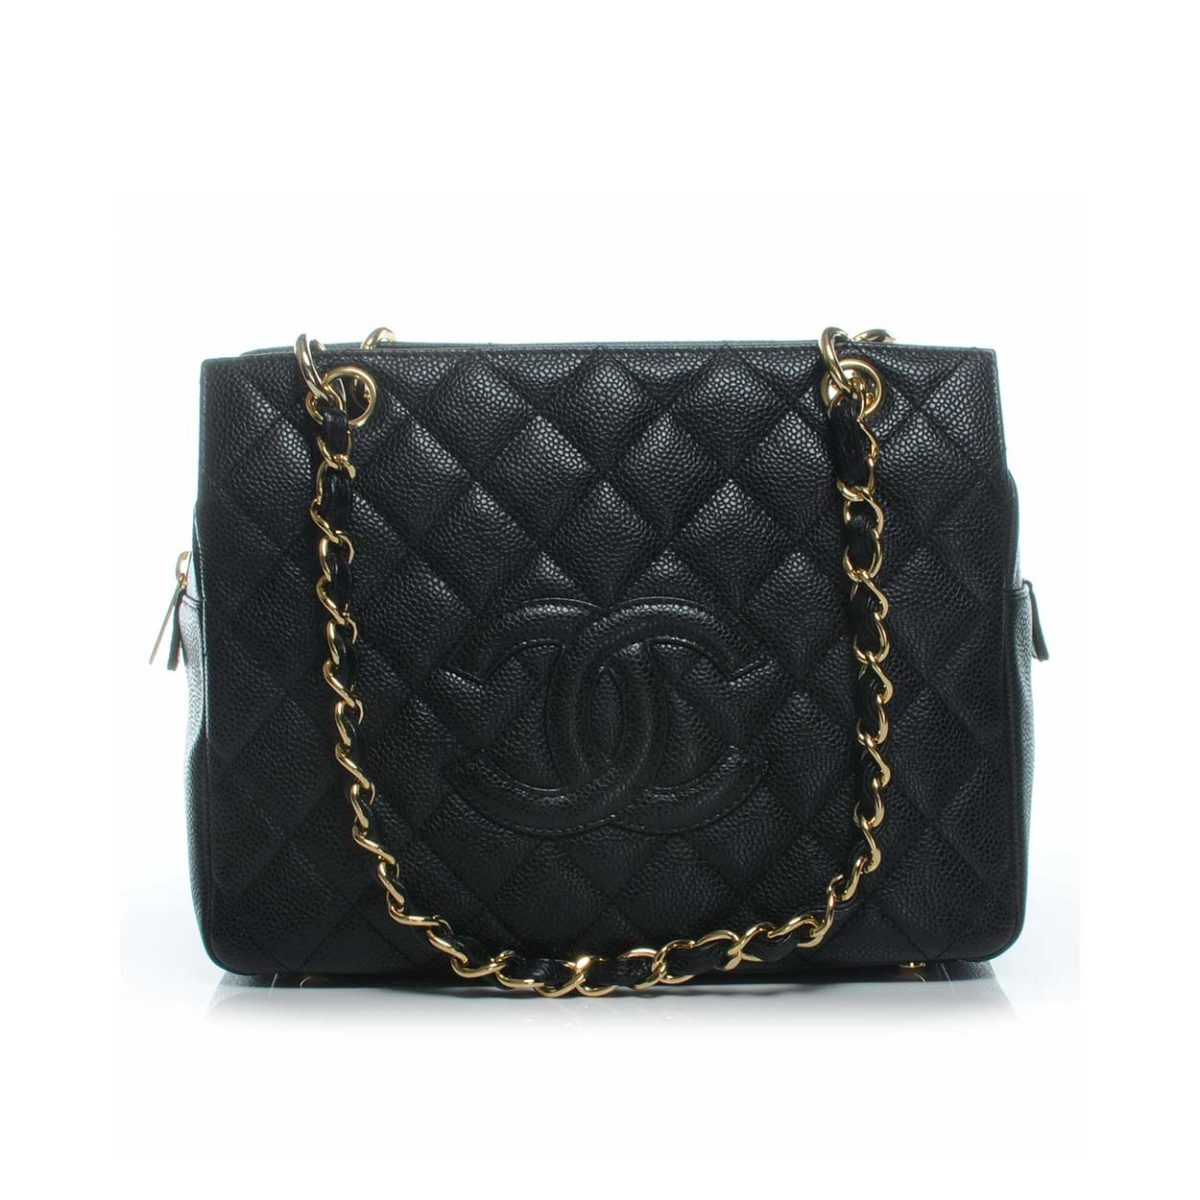 98211fcf26b8 CHANEL Caviar Leather Petite Timeless Shopping Tote Black